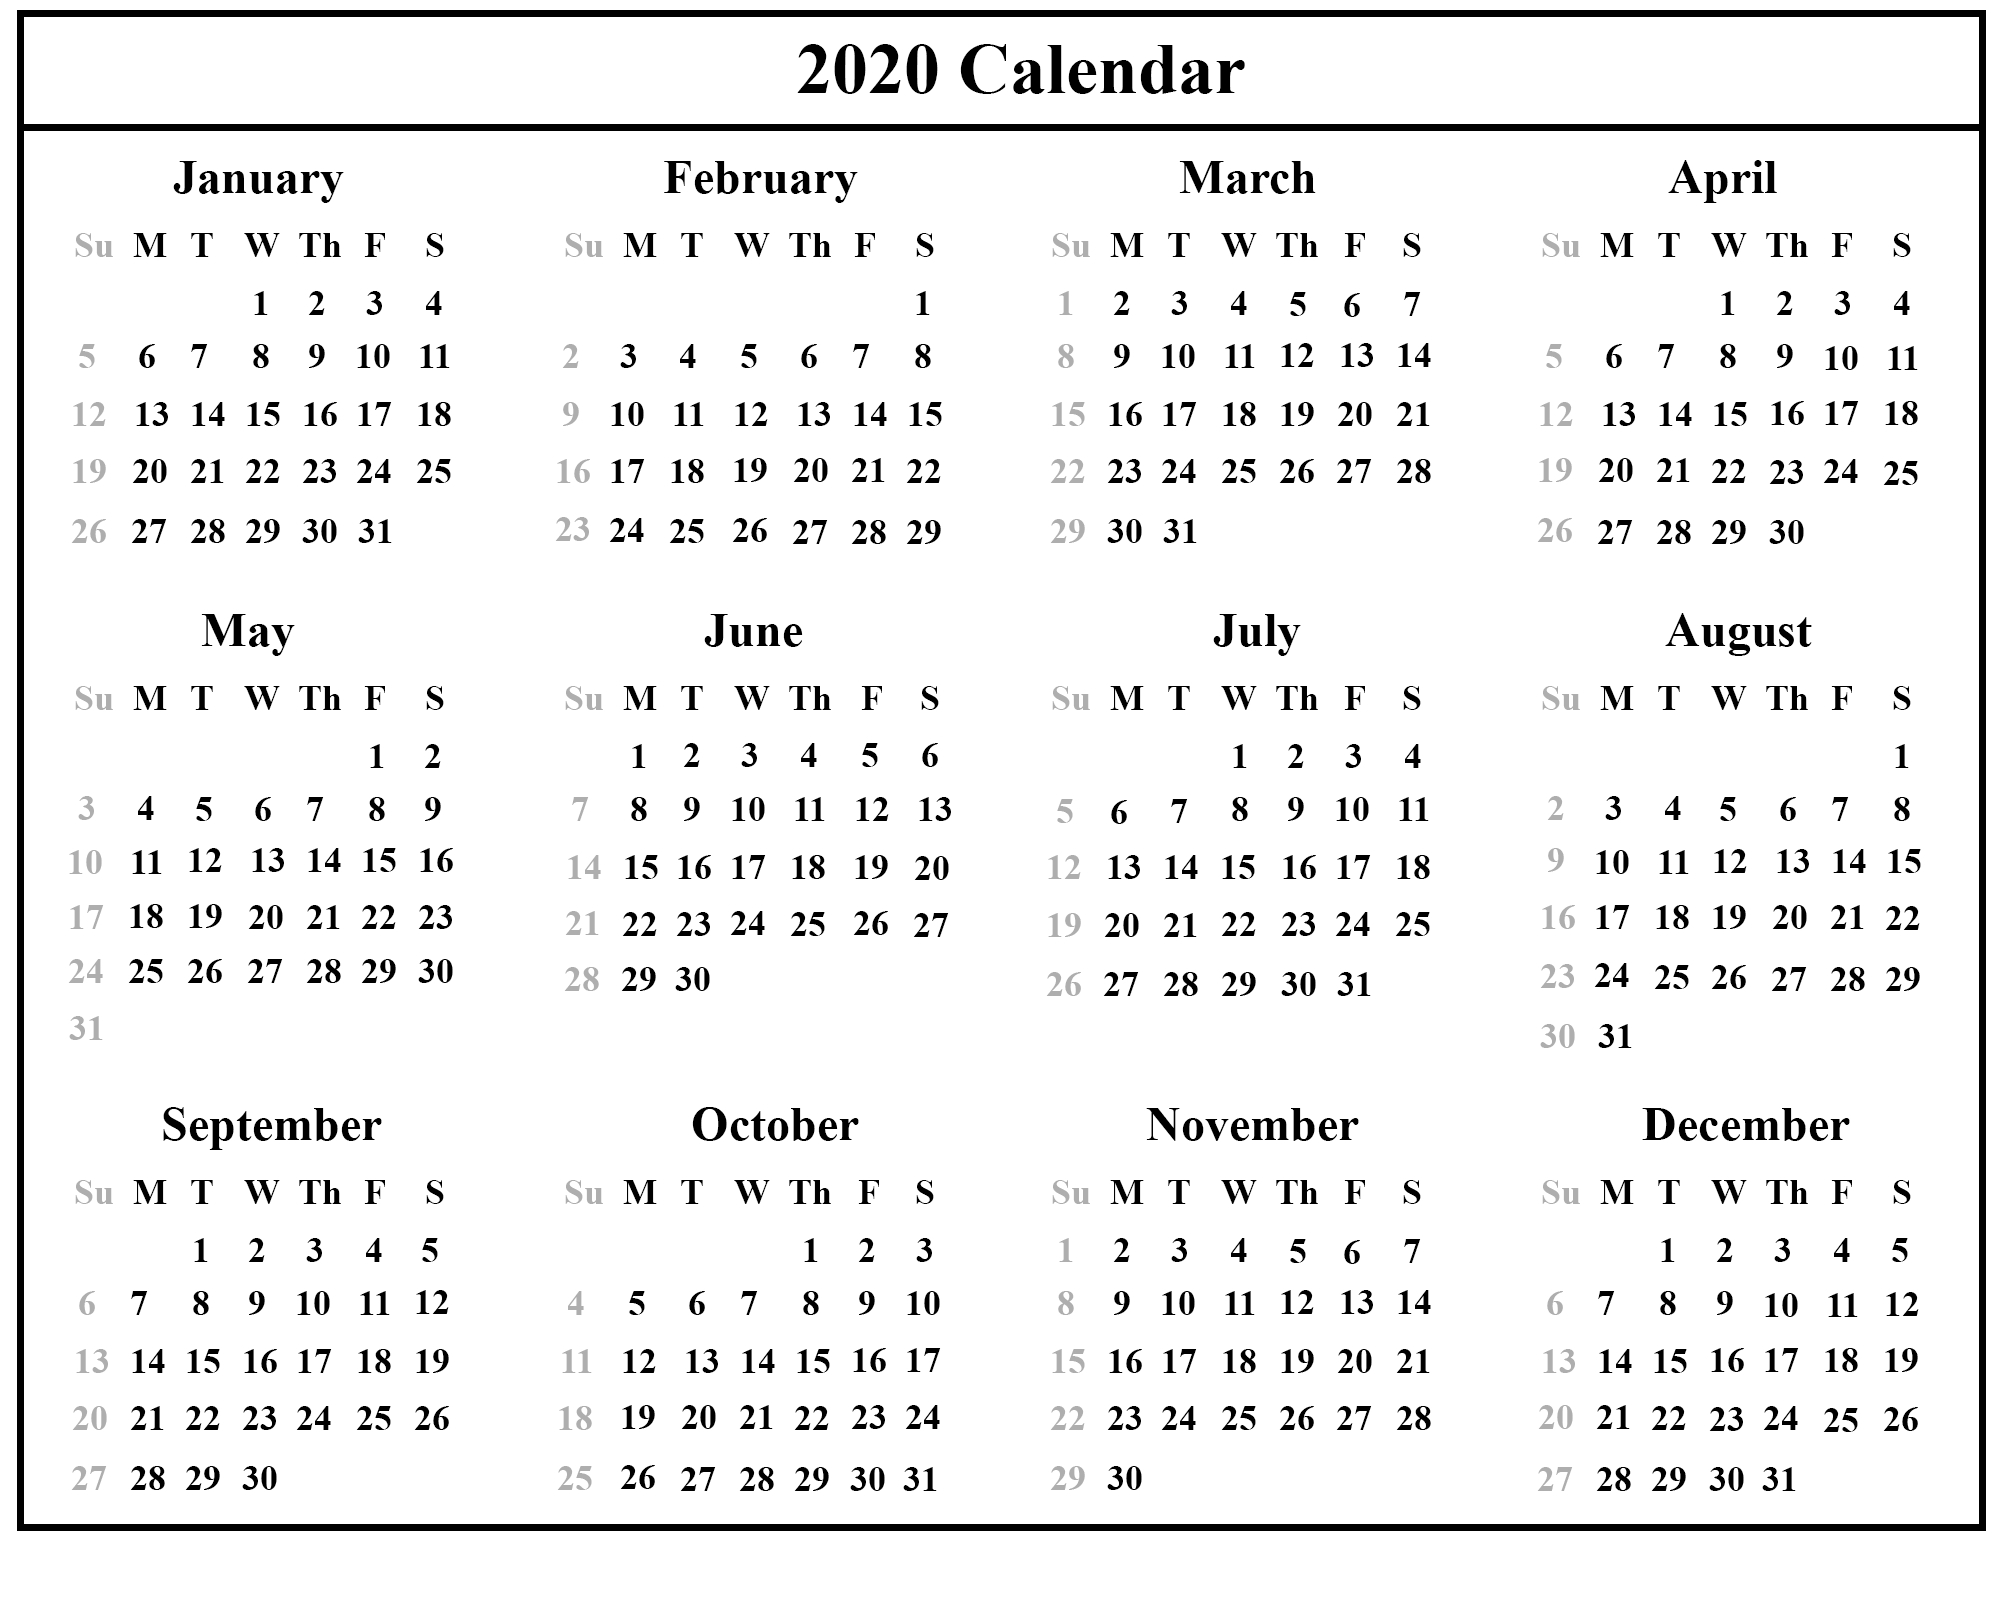 Free Printable Australia Calendar 2020 In Pdf, Excel & Word-2020 Calendar With Holidays Usa Printable Year In Advance